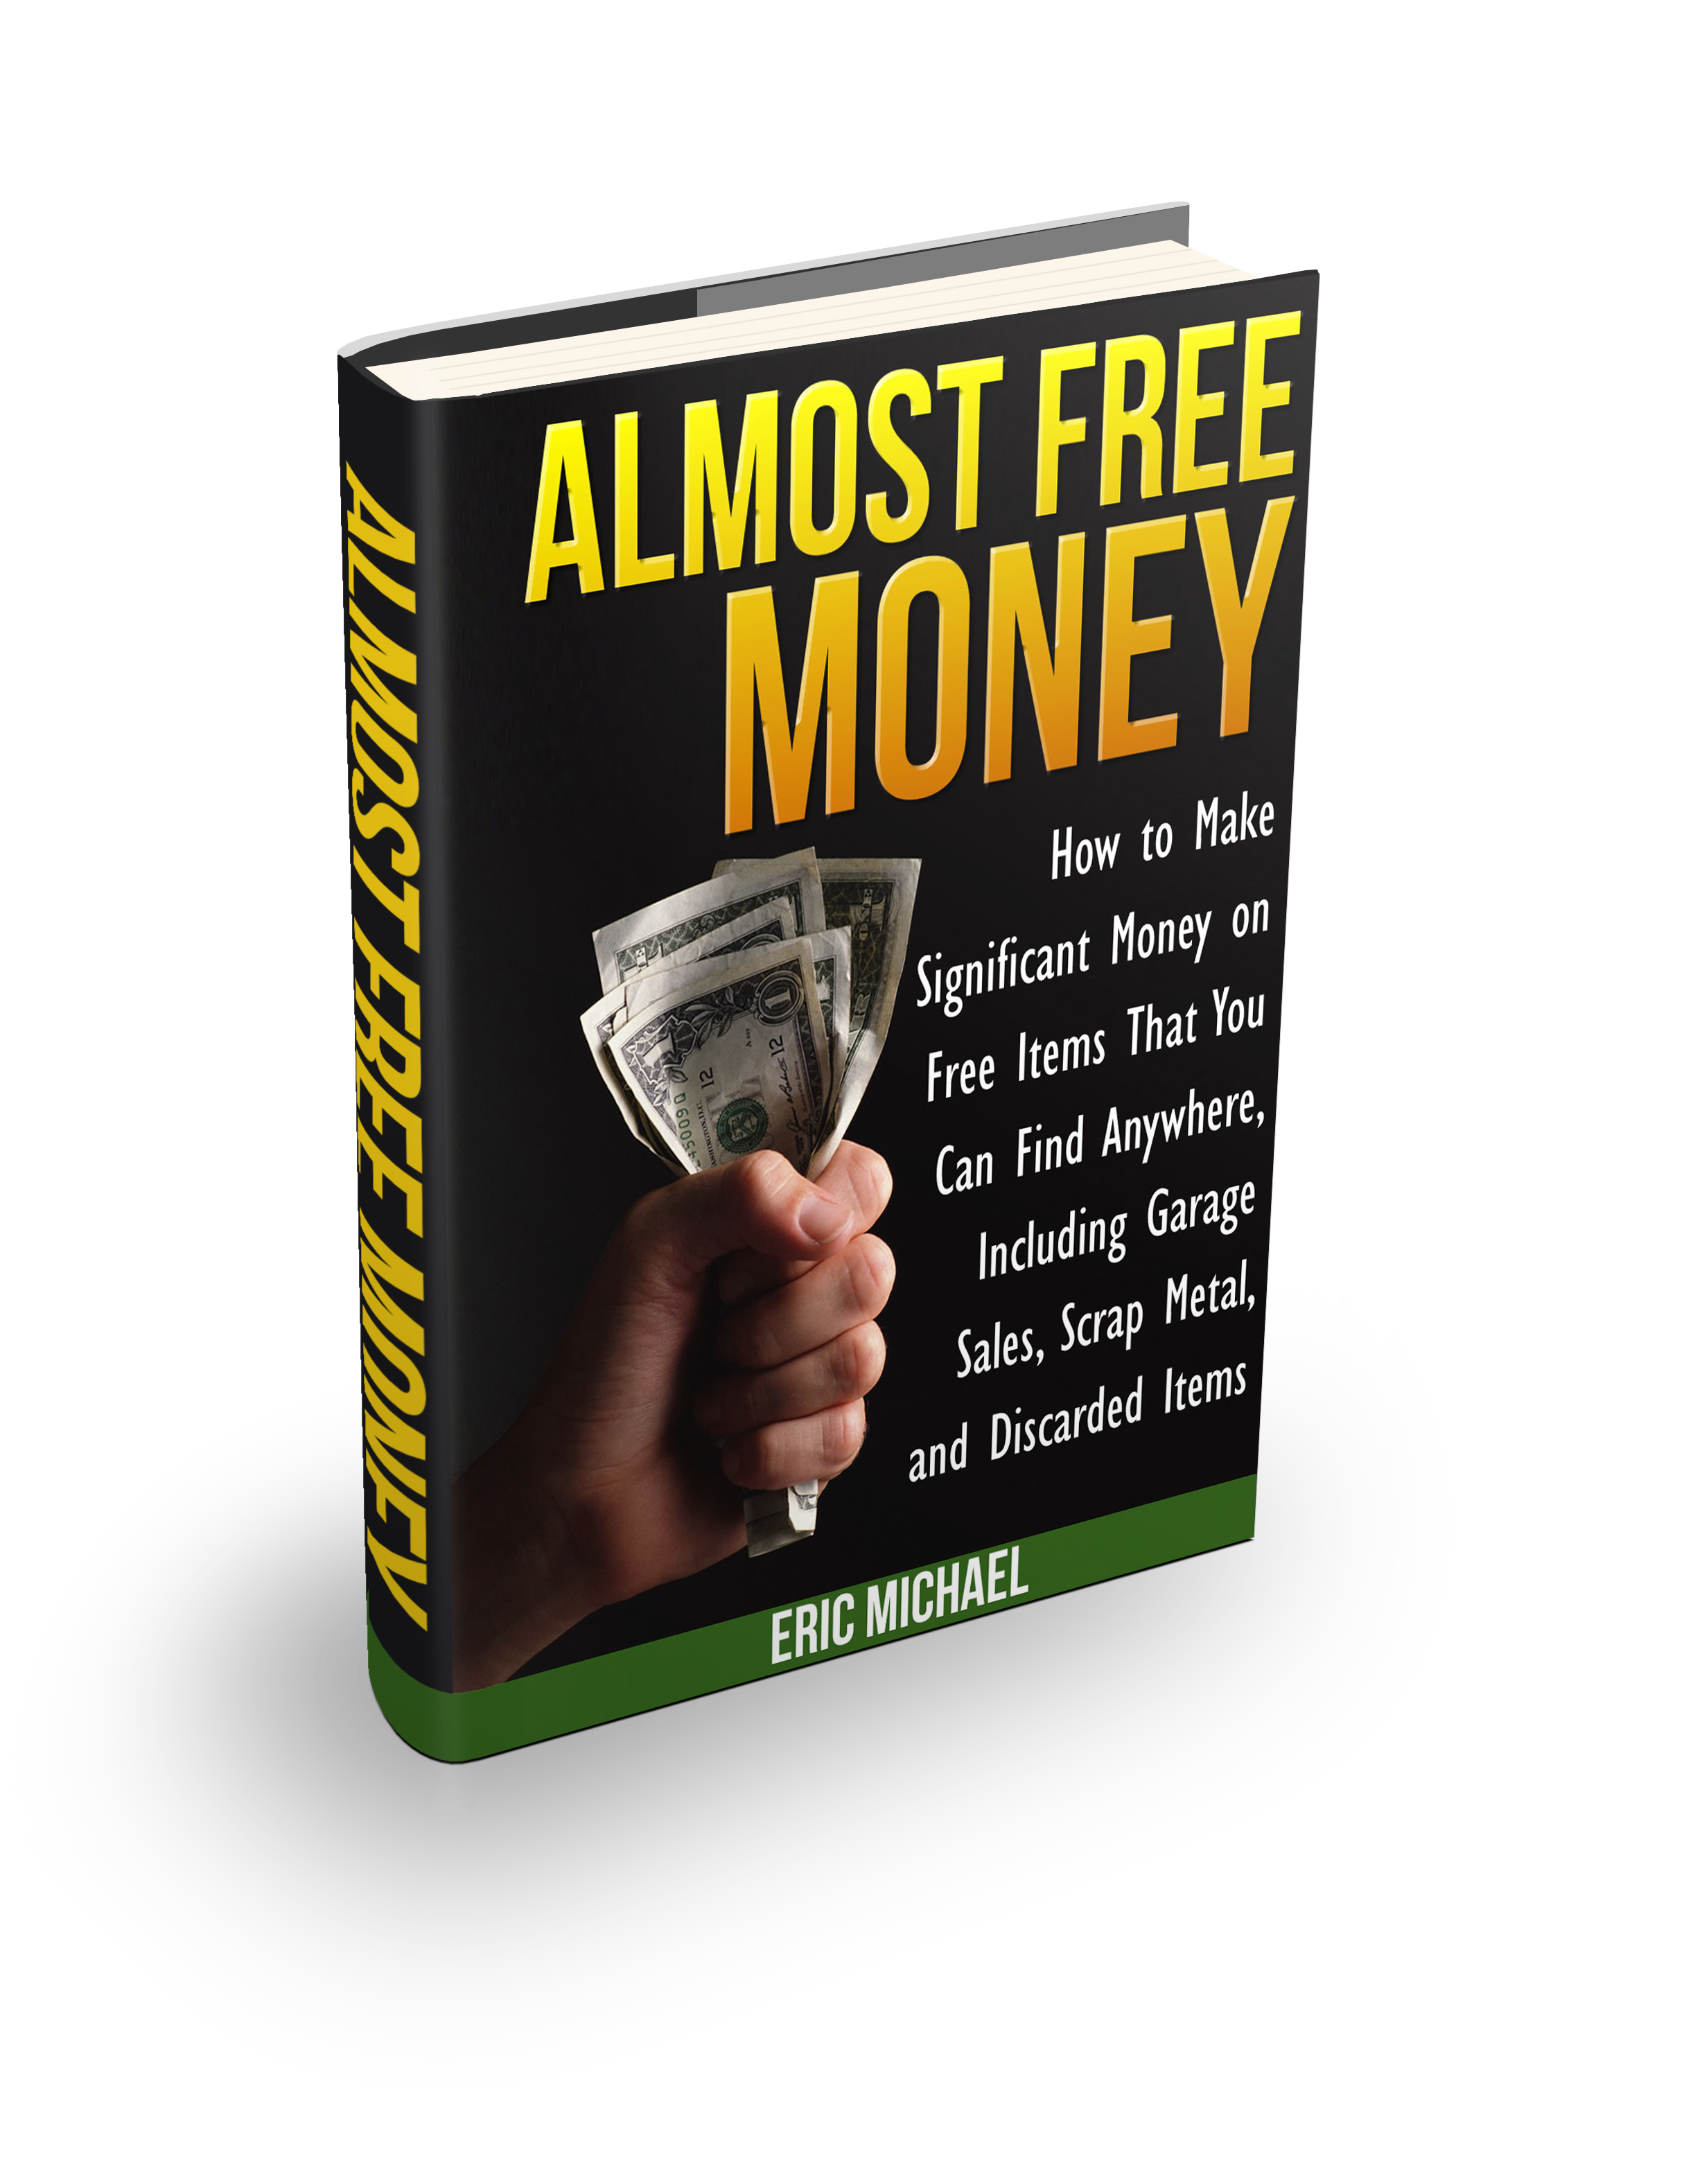 Almost Free Money Home Business Book 540 Free Items to Find and Sell